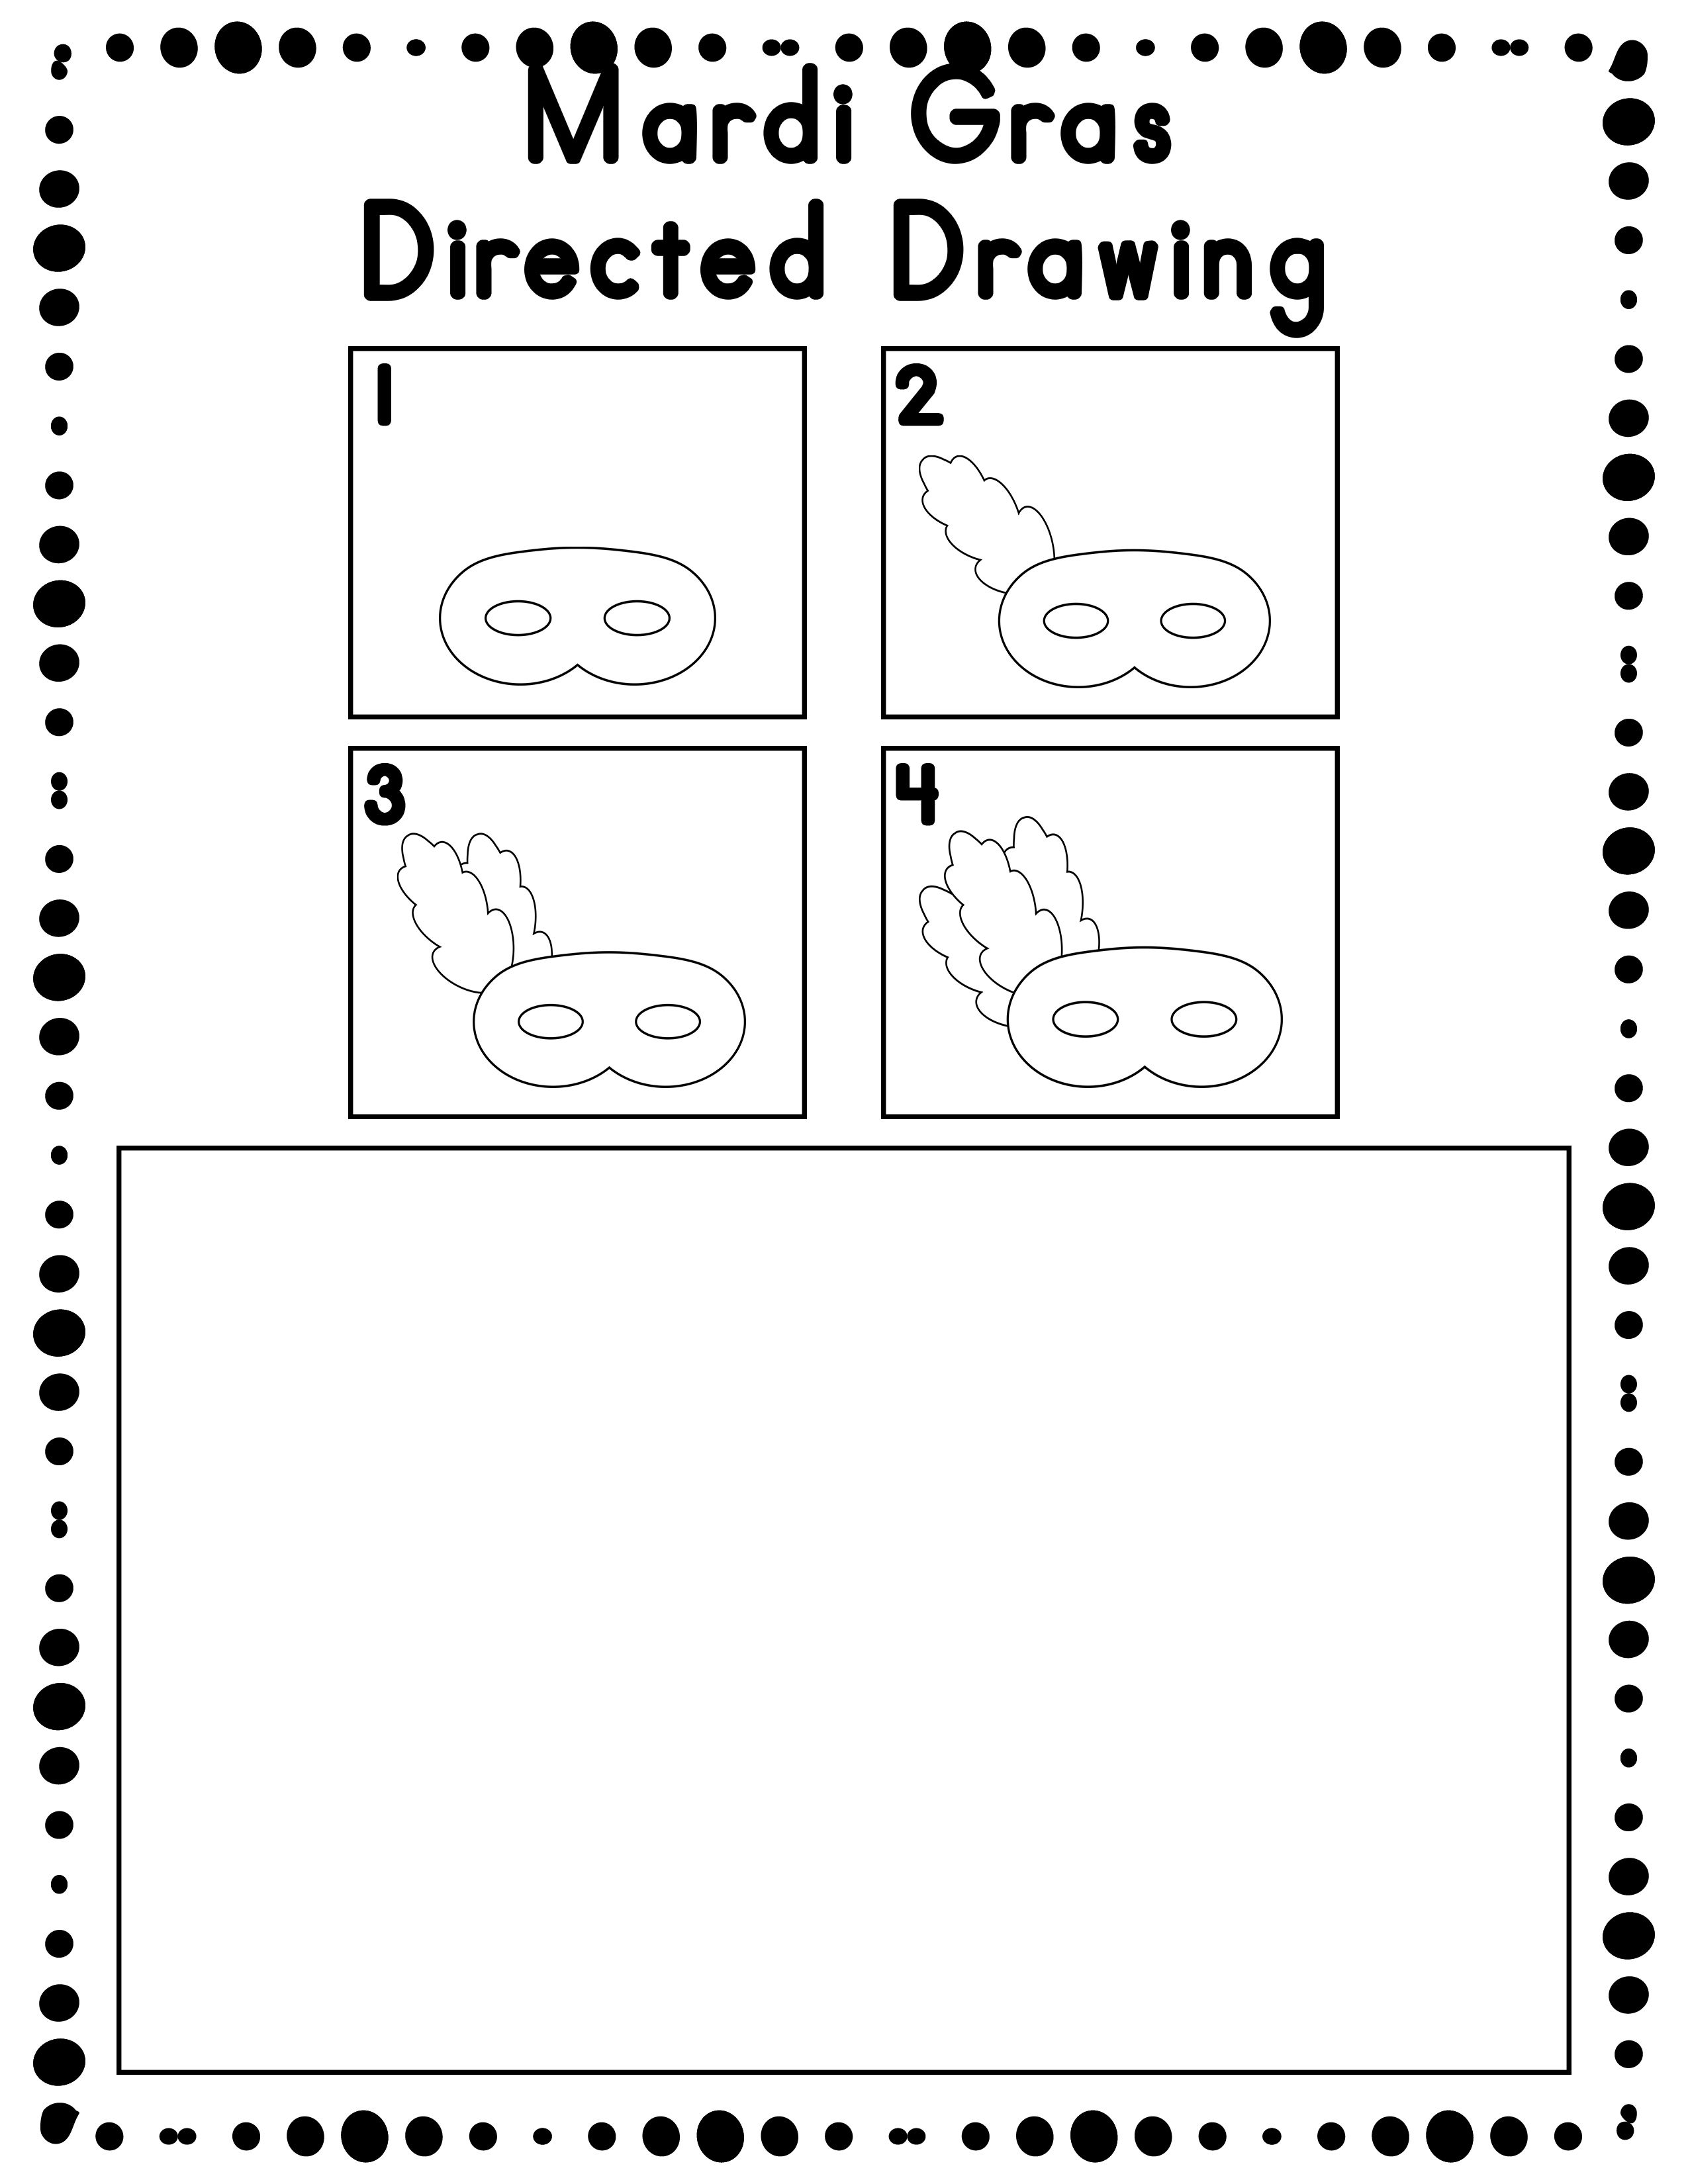 Mardi Gras Directed Drawing Activity For Including Art In